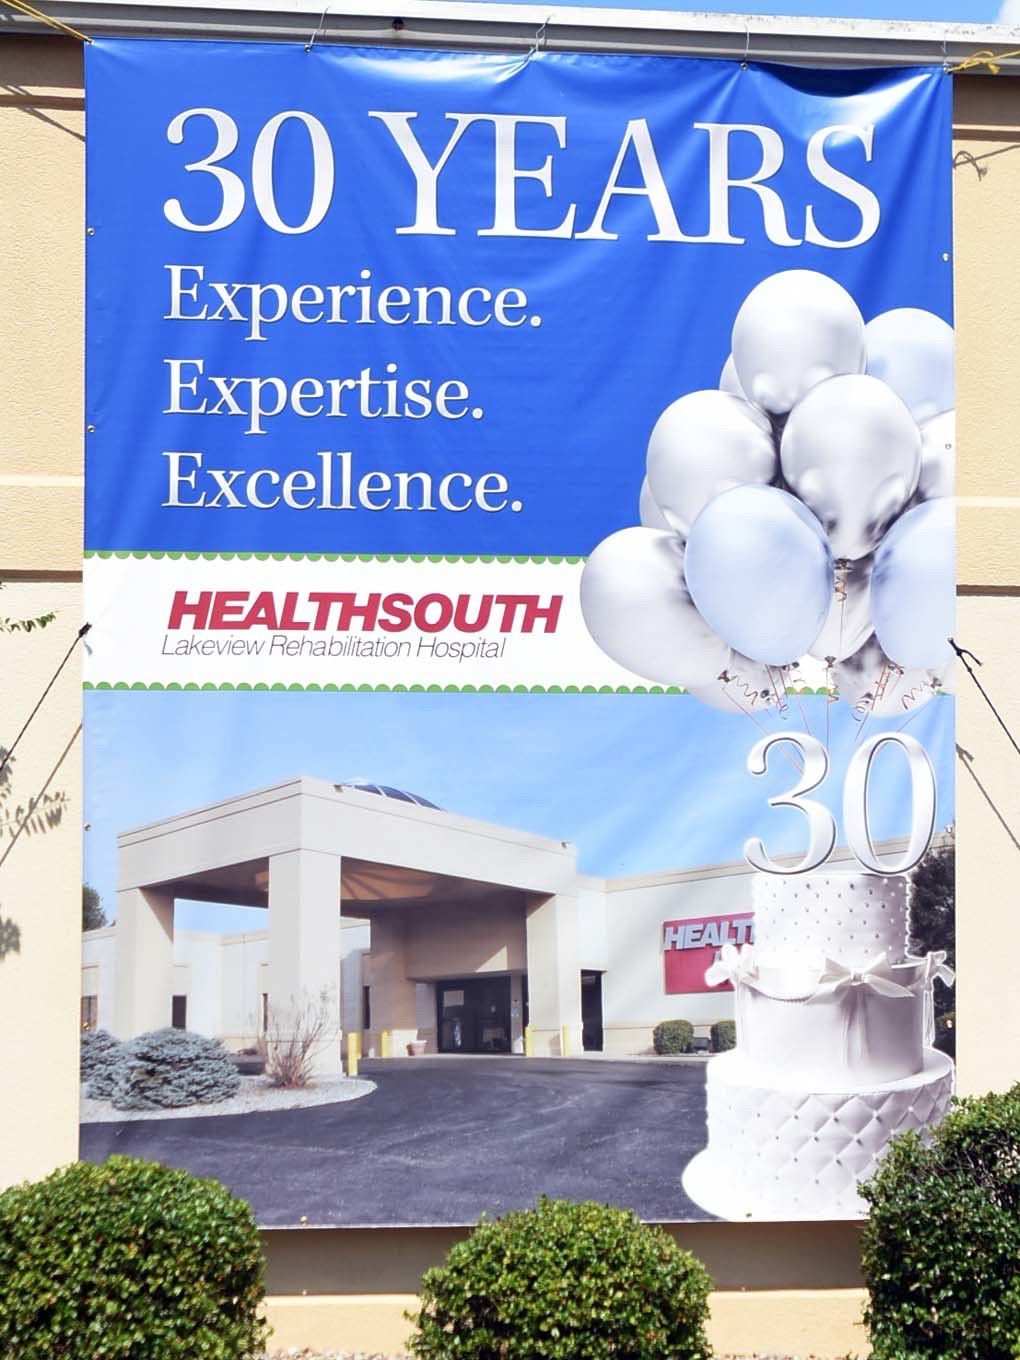 Health south physical therapy - Healthsouth Lakeview To Celebrate 30 Years Local News Thenewsenterprise Com